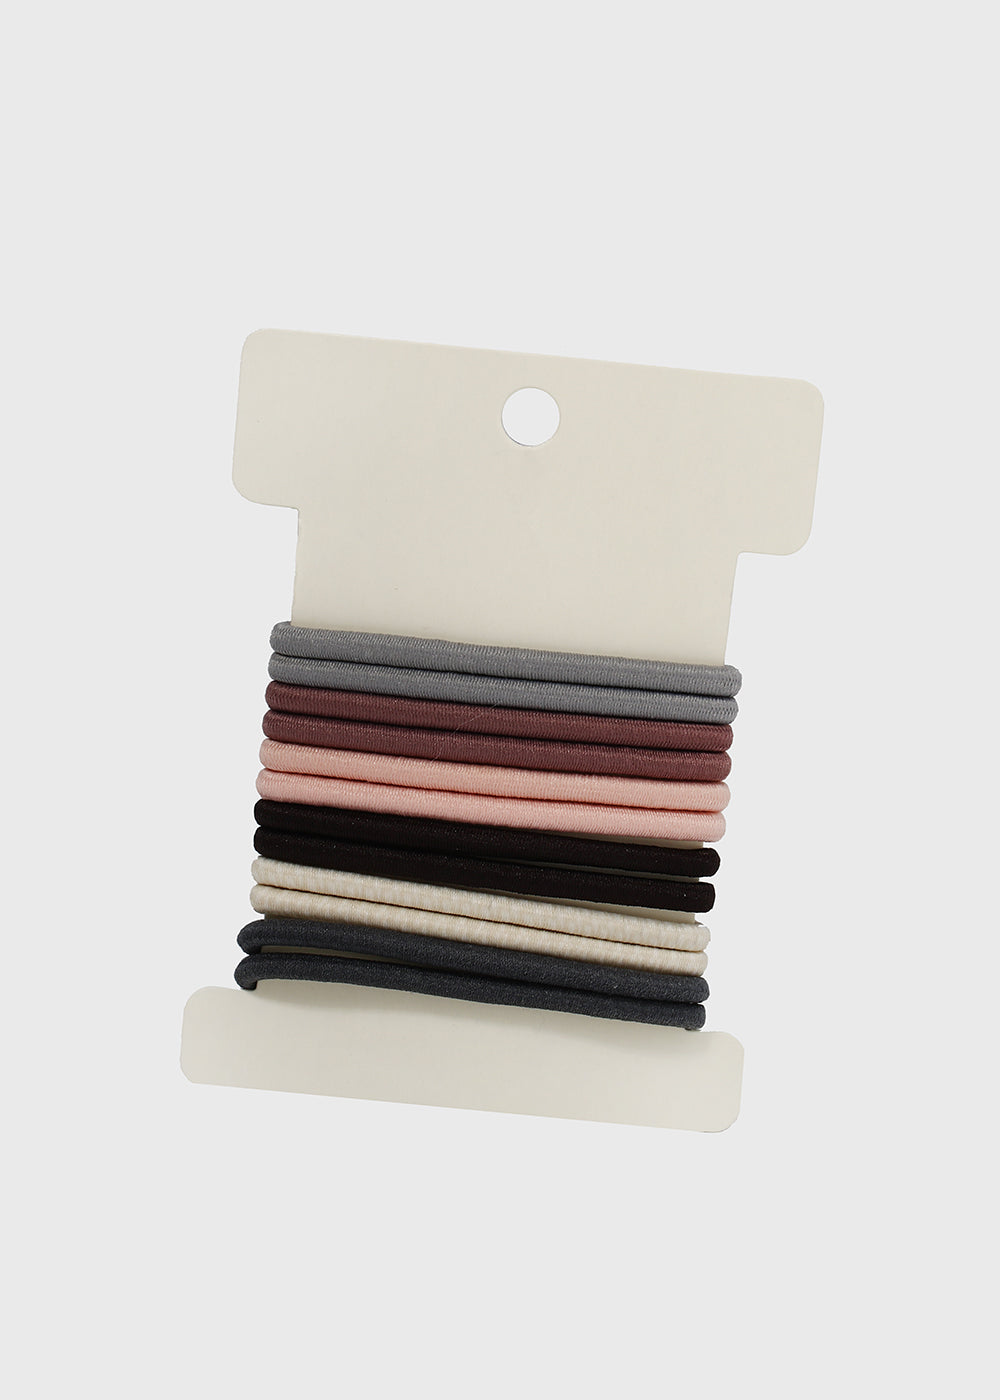 12 Piece Neutral Tone Hair Ties